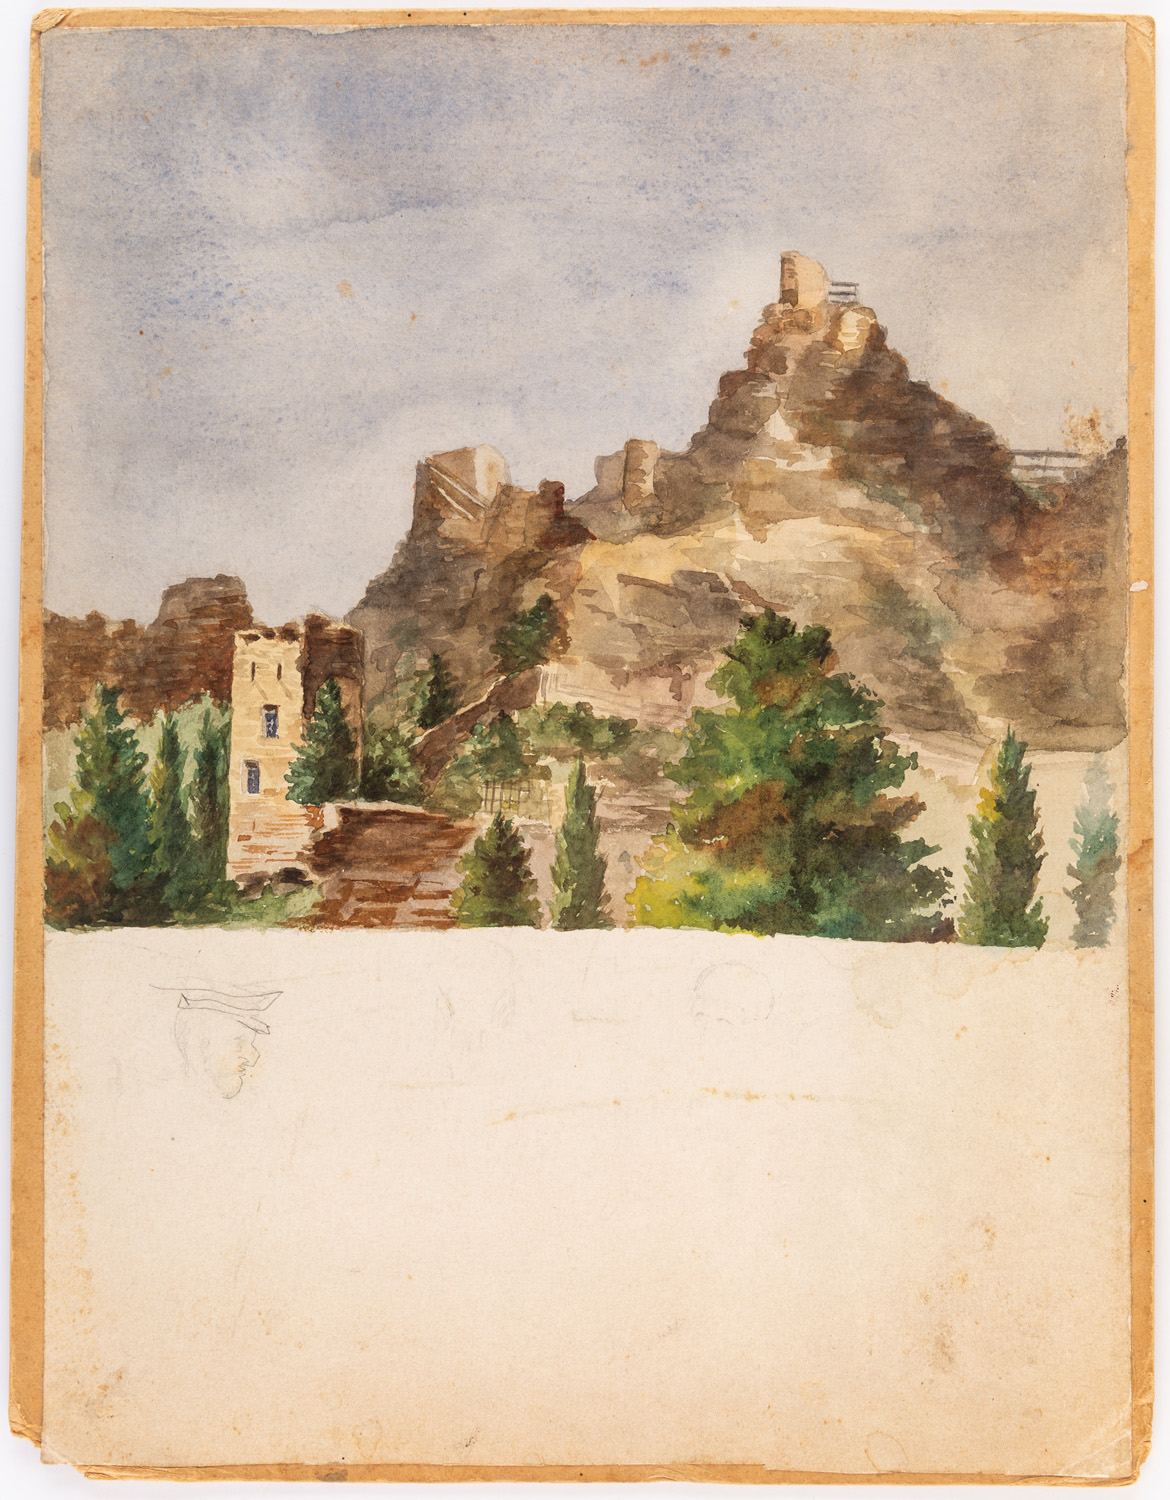 A GROUP OF THREE LANDSCAPE DRAWINGS BY NIKOLAI LANCERAY (RUSSIAN 1879-1942) - Image 3 of 10